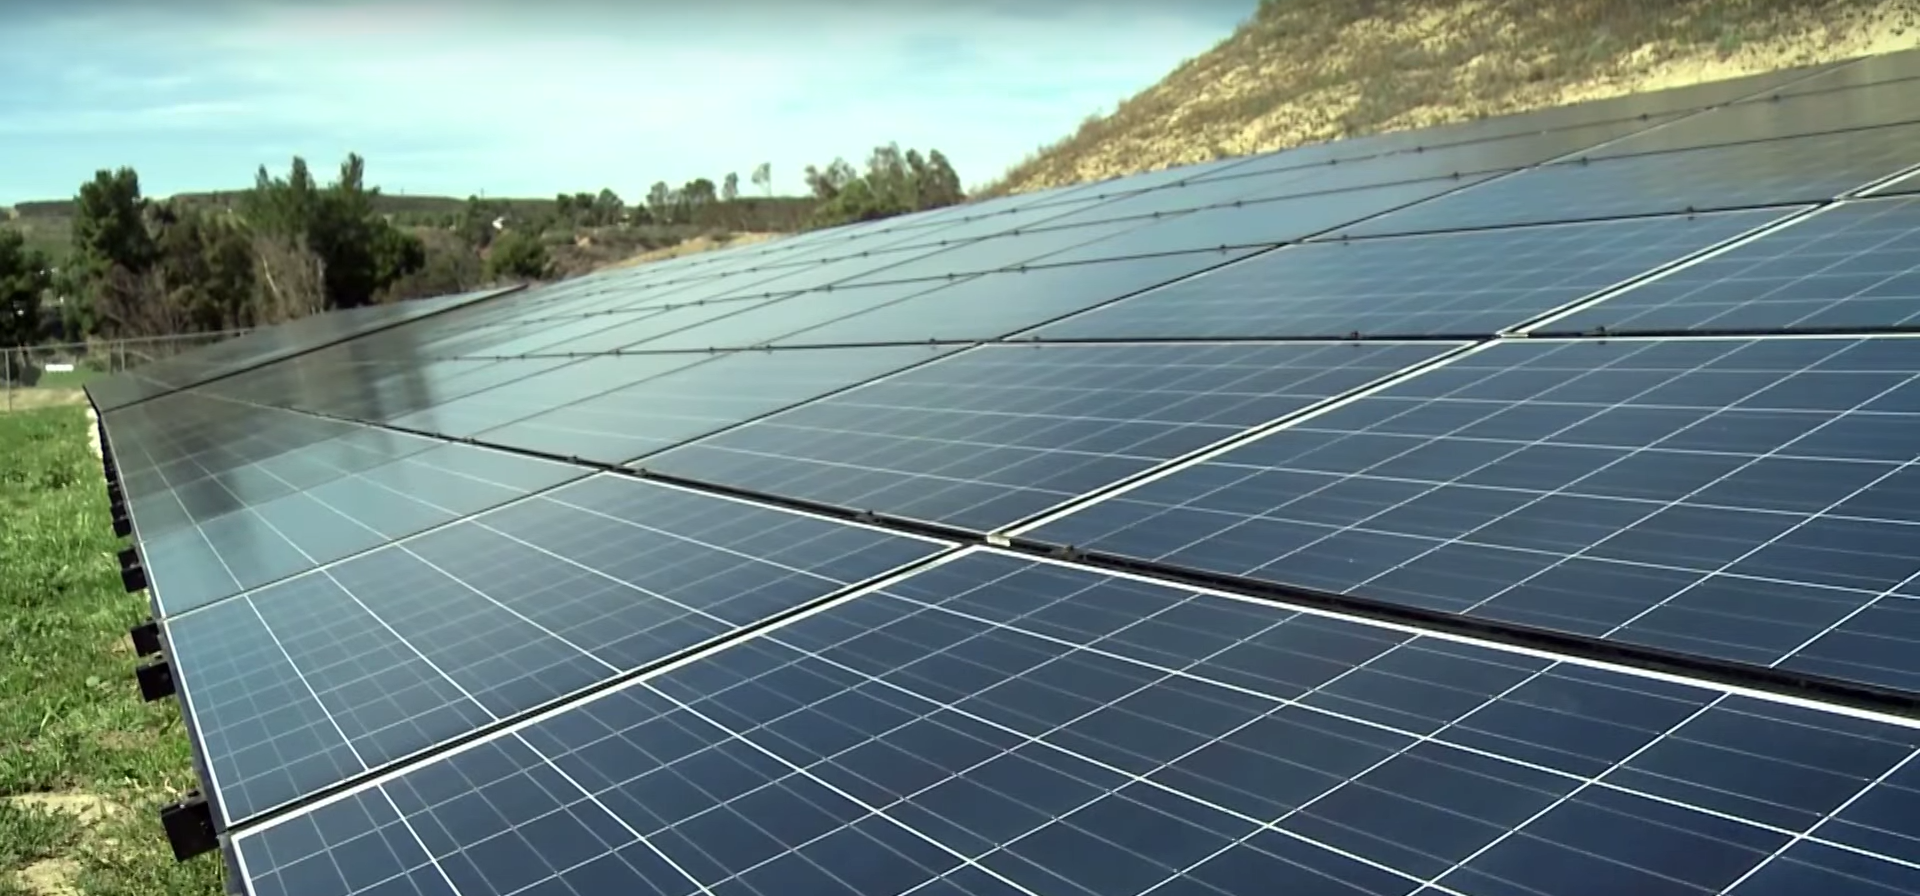 Solar power in California. Photo by: CCTV America / YouTube